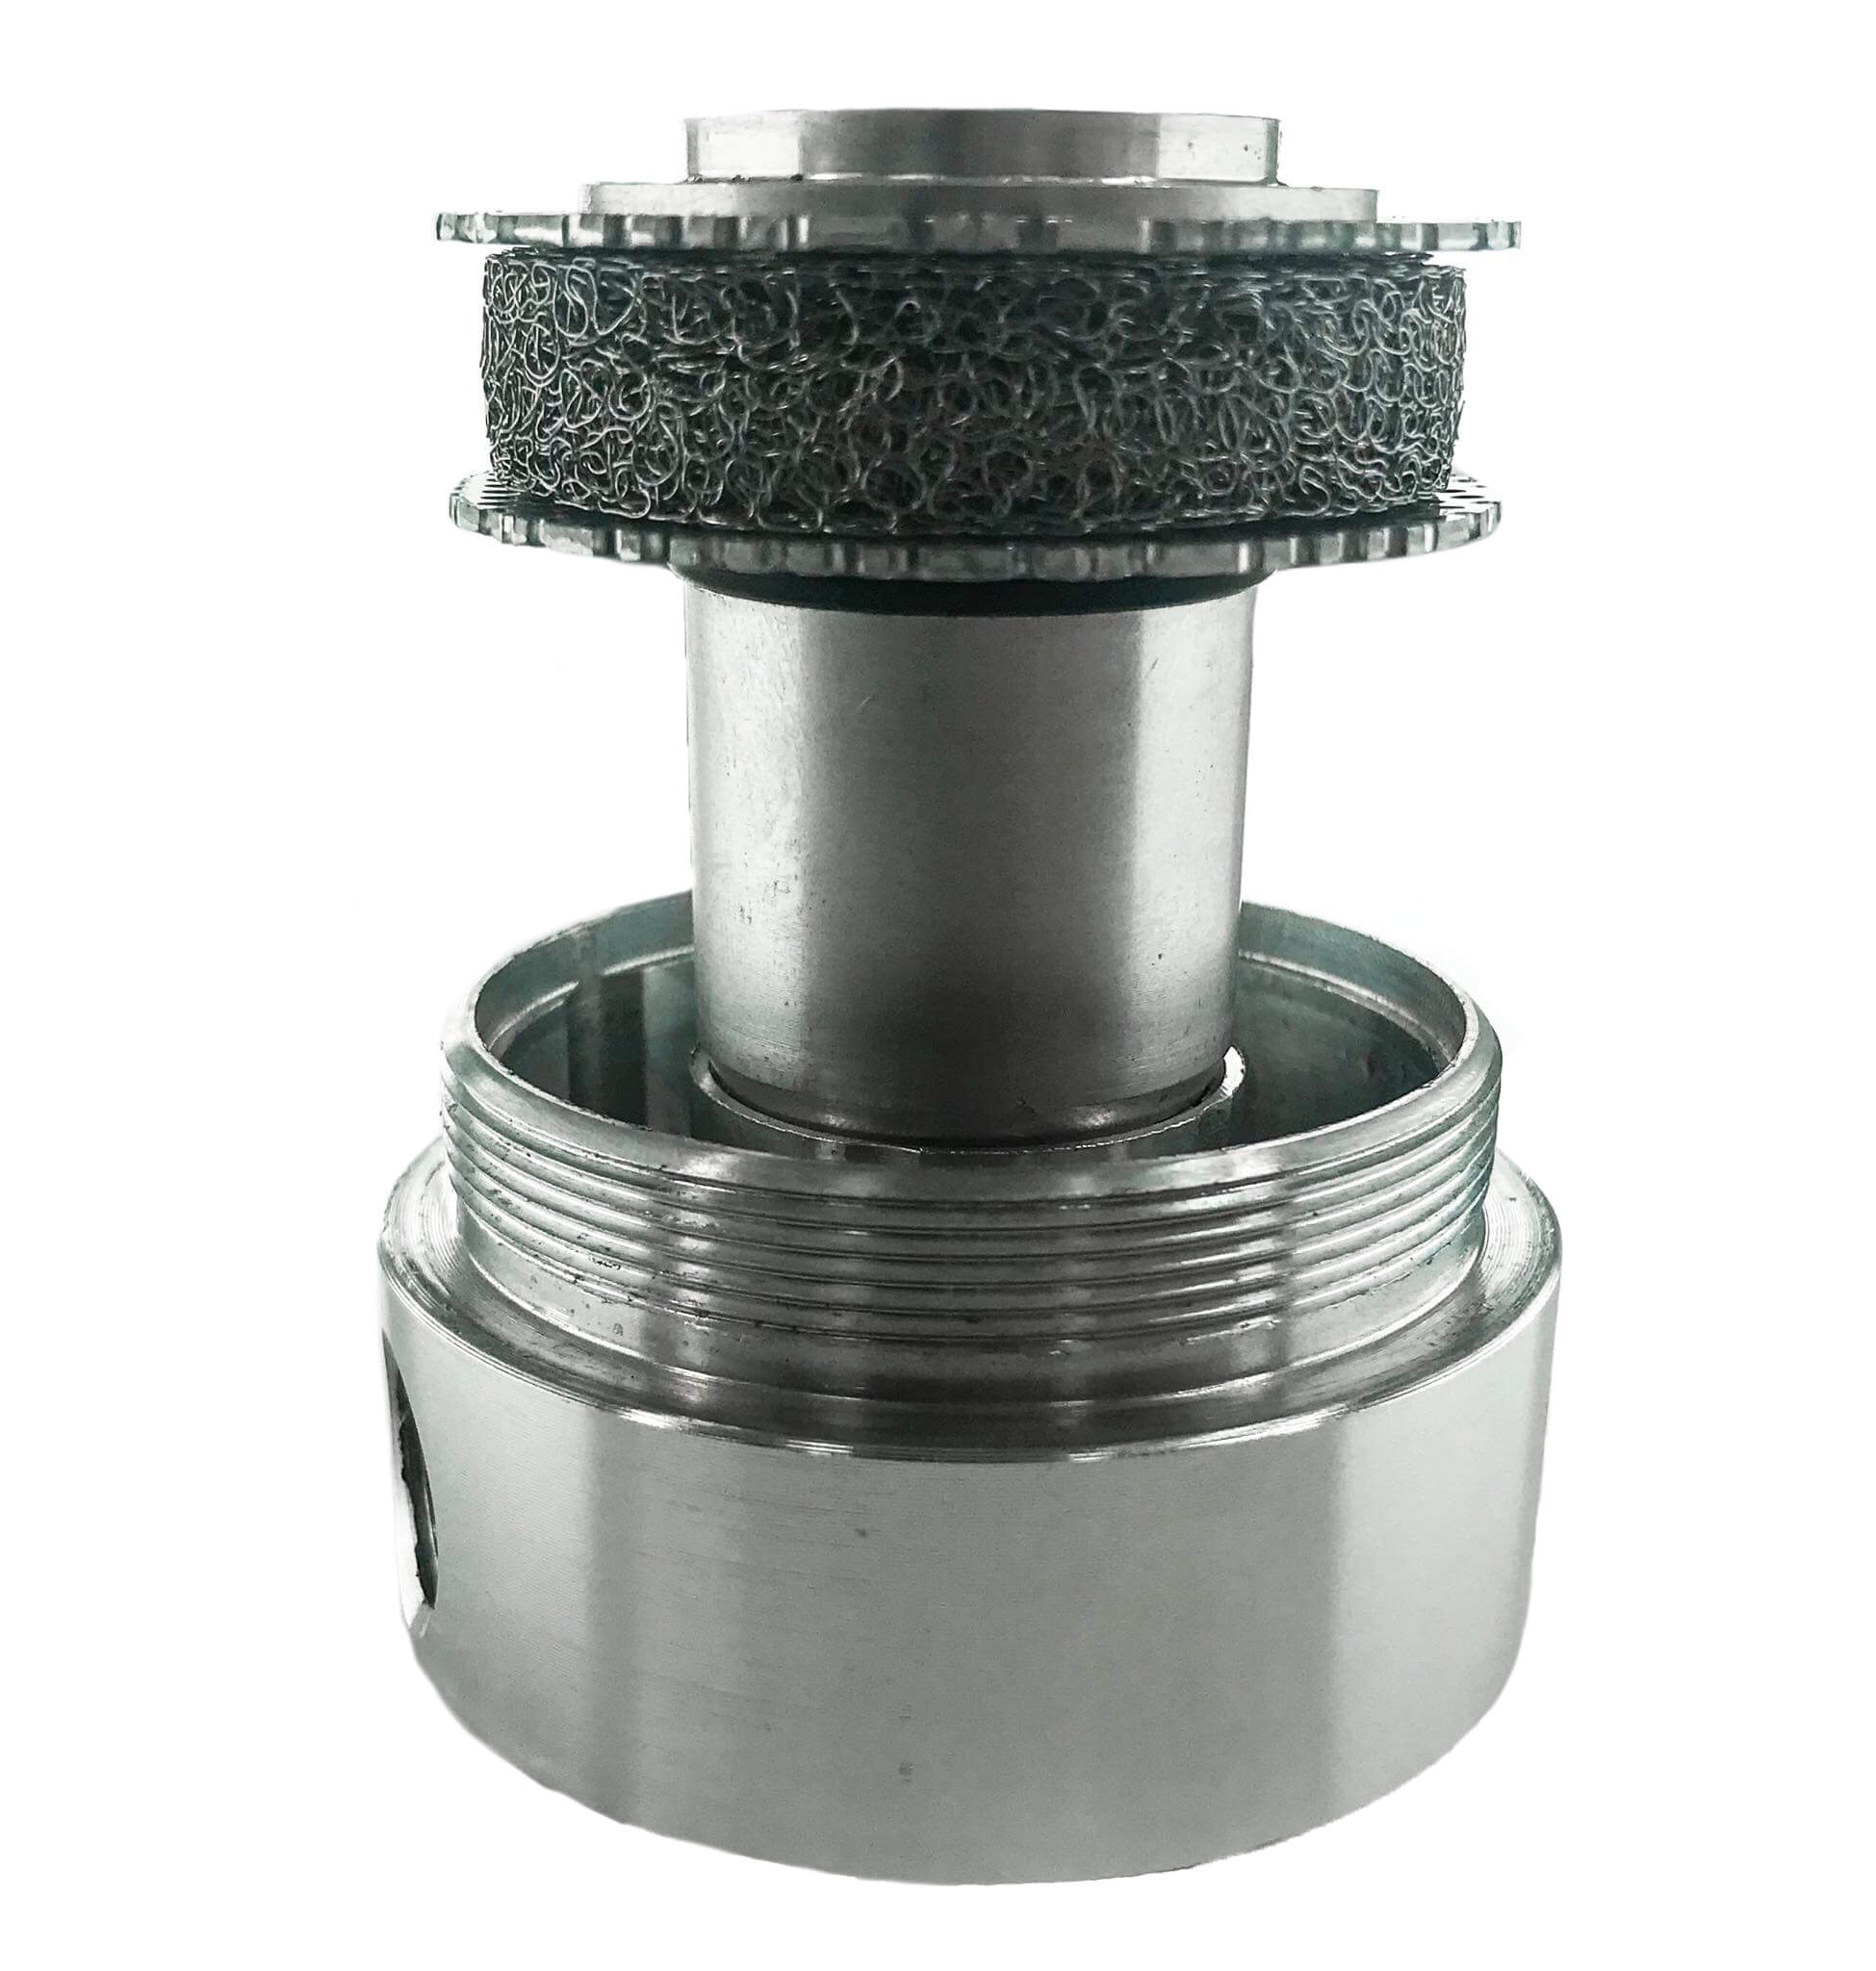 UPR Products filtration catch can